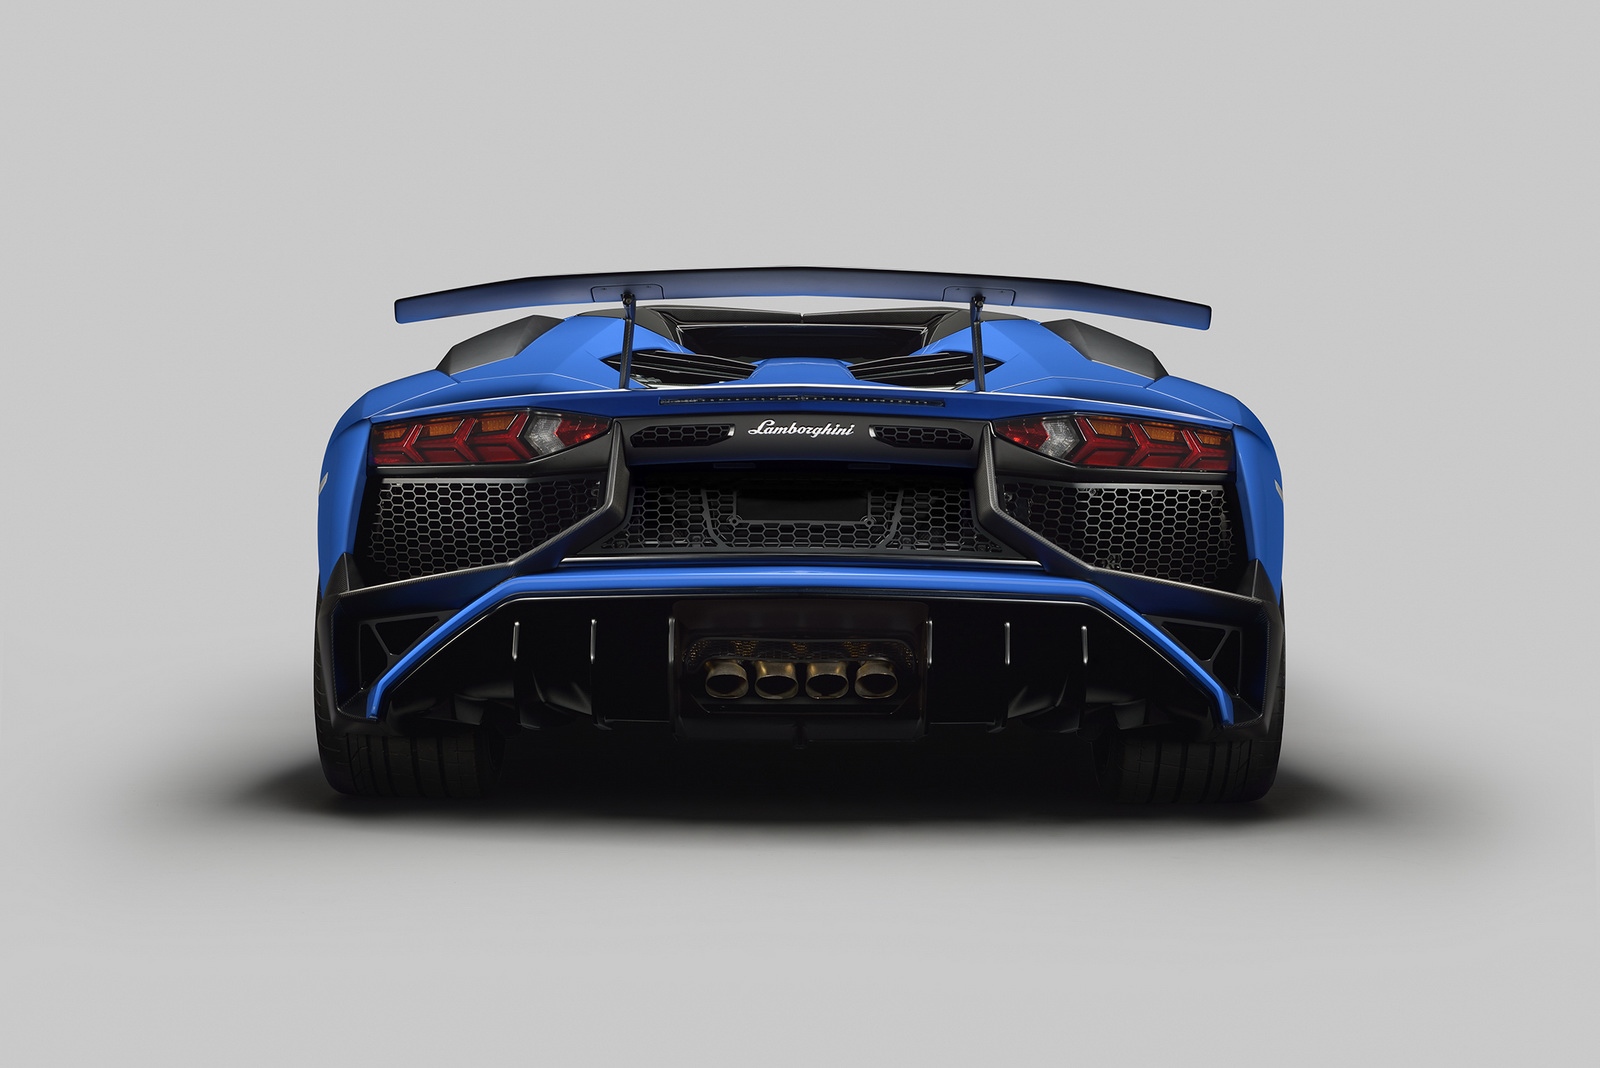 2019 Lamborghini Aventador LP750 4 SV photo - 5